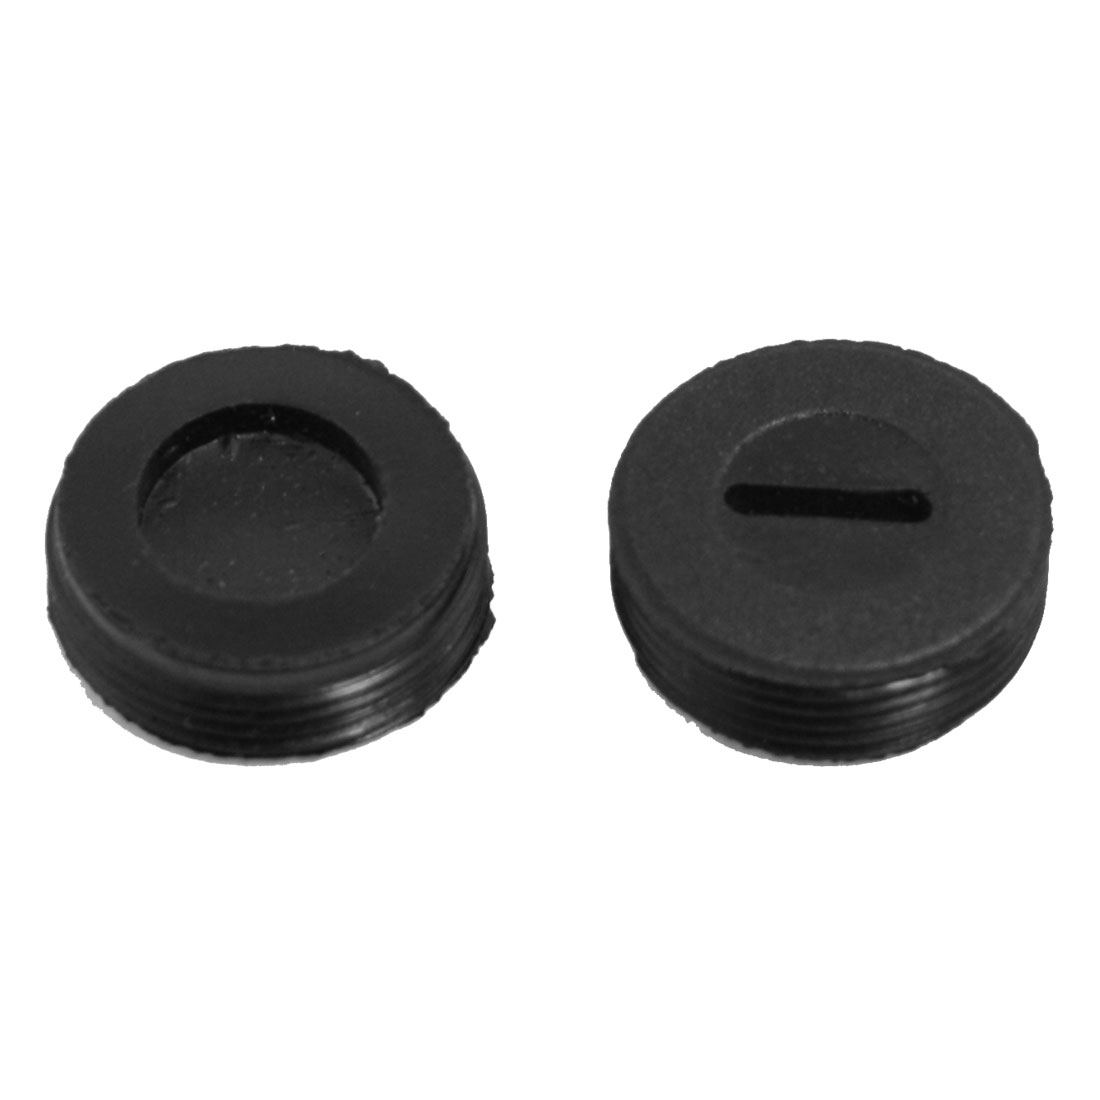 18mm Diameter Plastic Carbon Brush Holder Cap Cover 2 Pcs